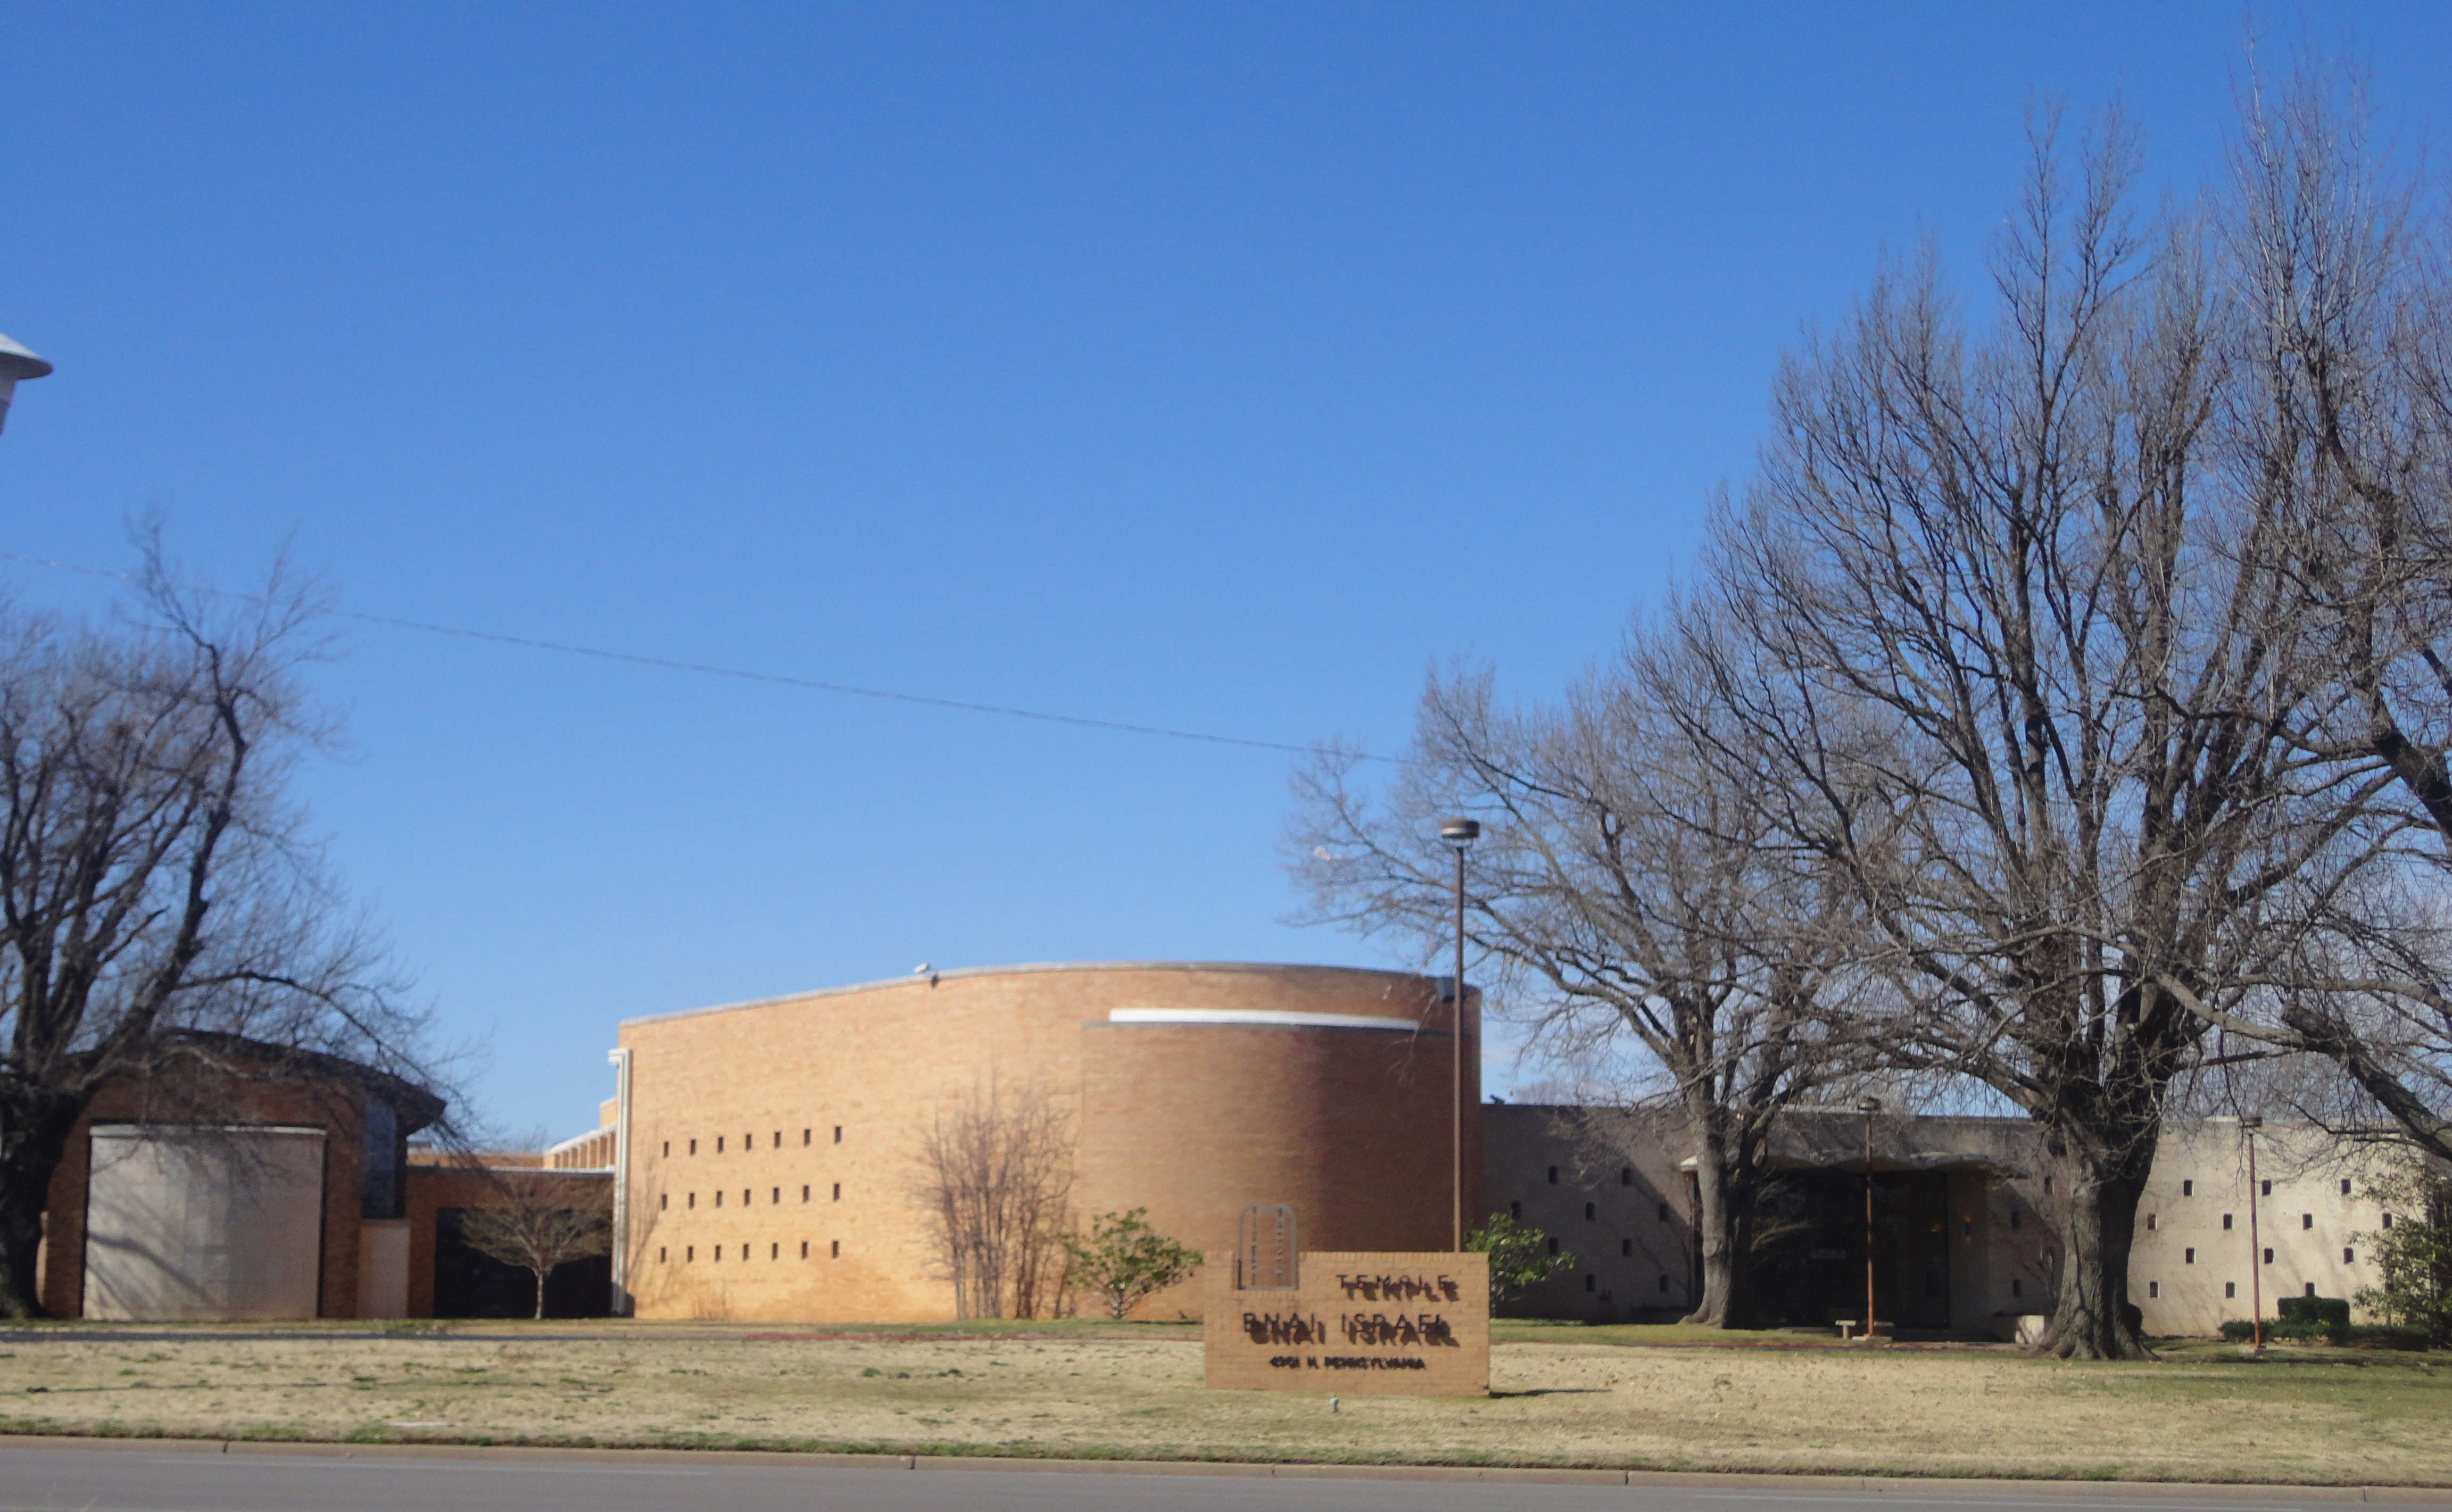 Temple B'nai Israel is one of Oklahoma's oldest Jewish congregations, forming in 1903.